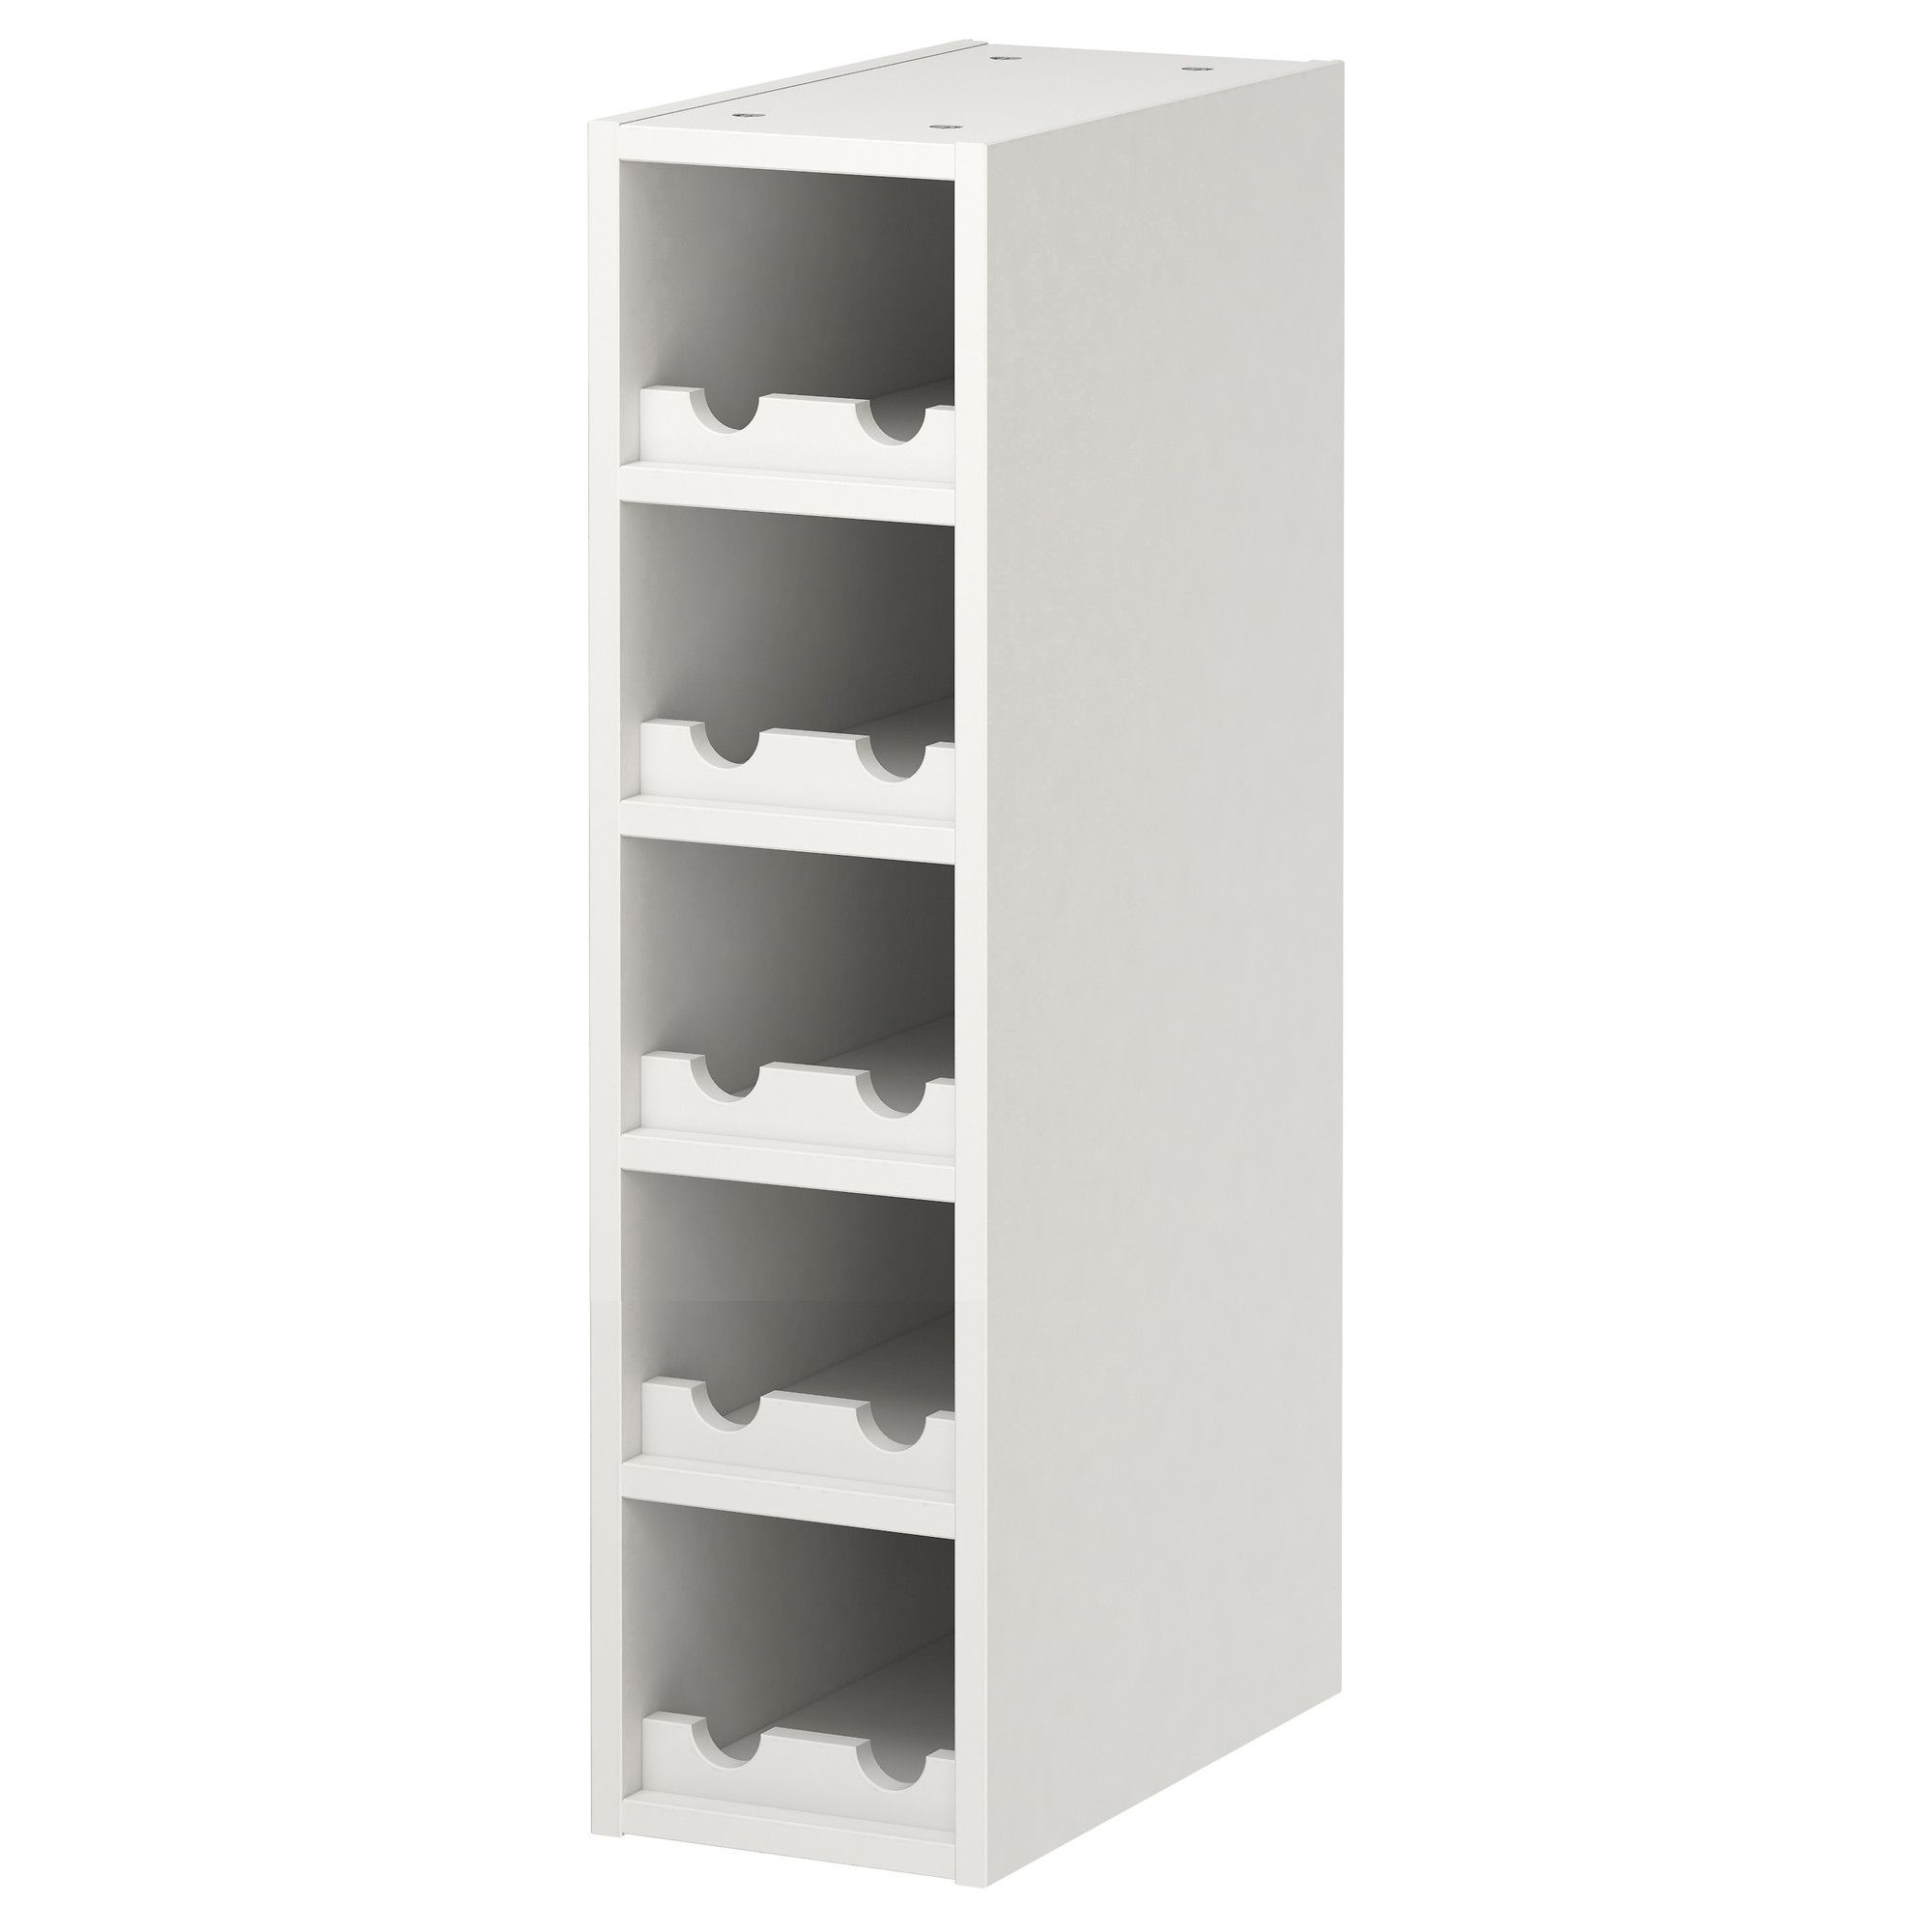 Integrated Wine Cabinet Perfekt Wine Shelf 20x70 Cm Ikea Homebody Pinterest Wine